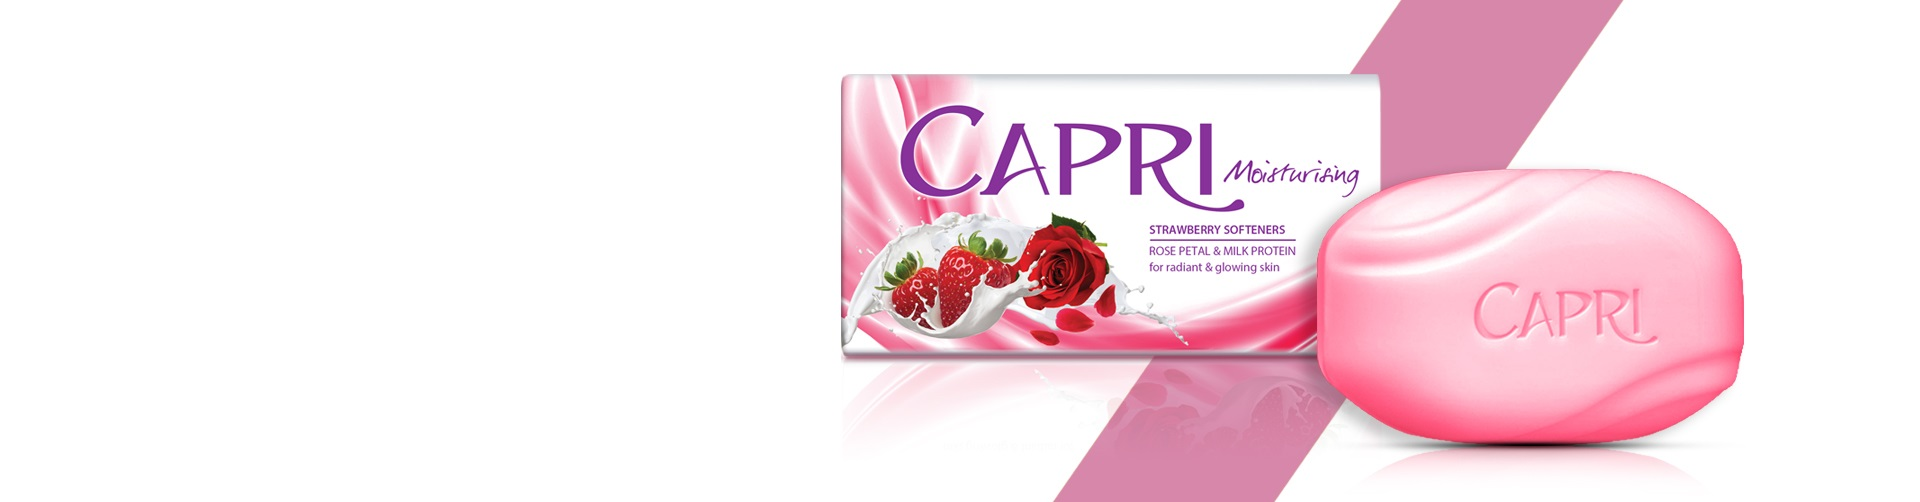 Capri Strawberry Softeners